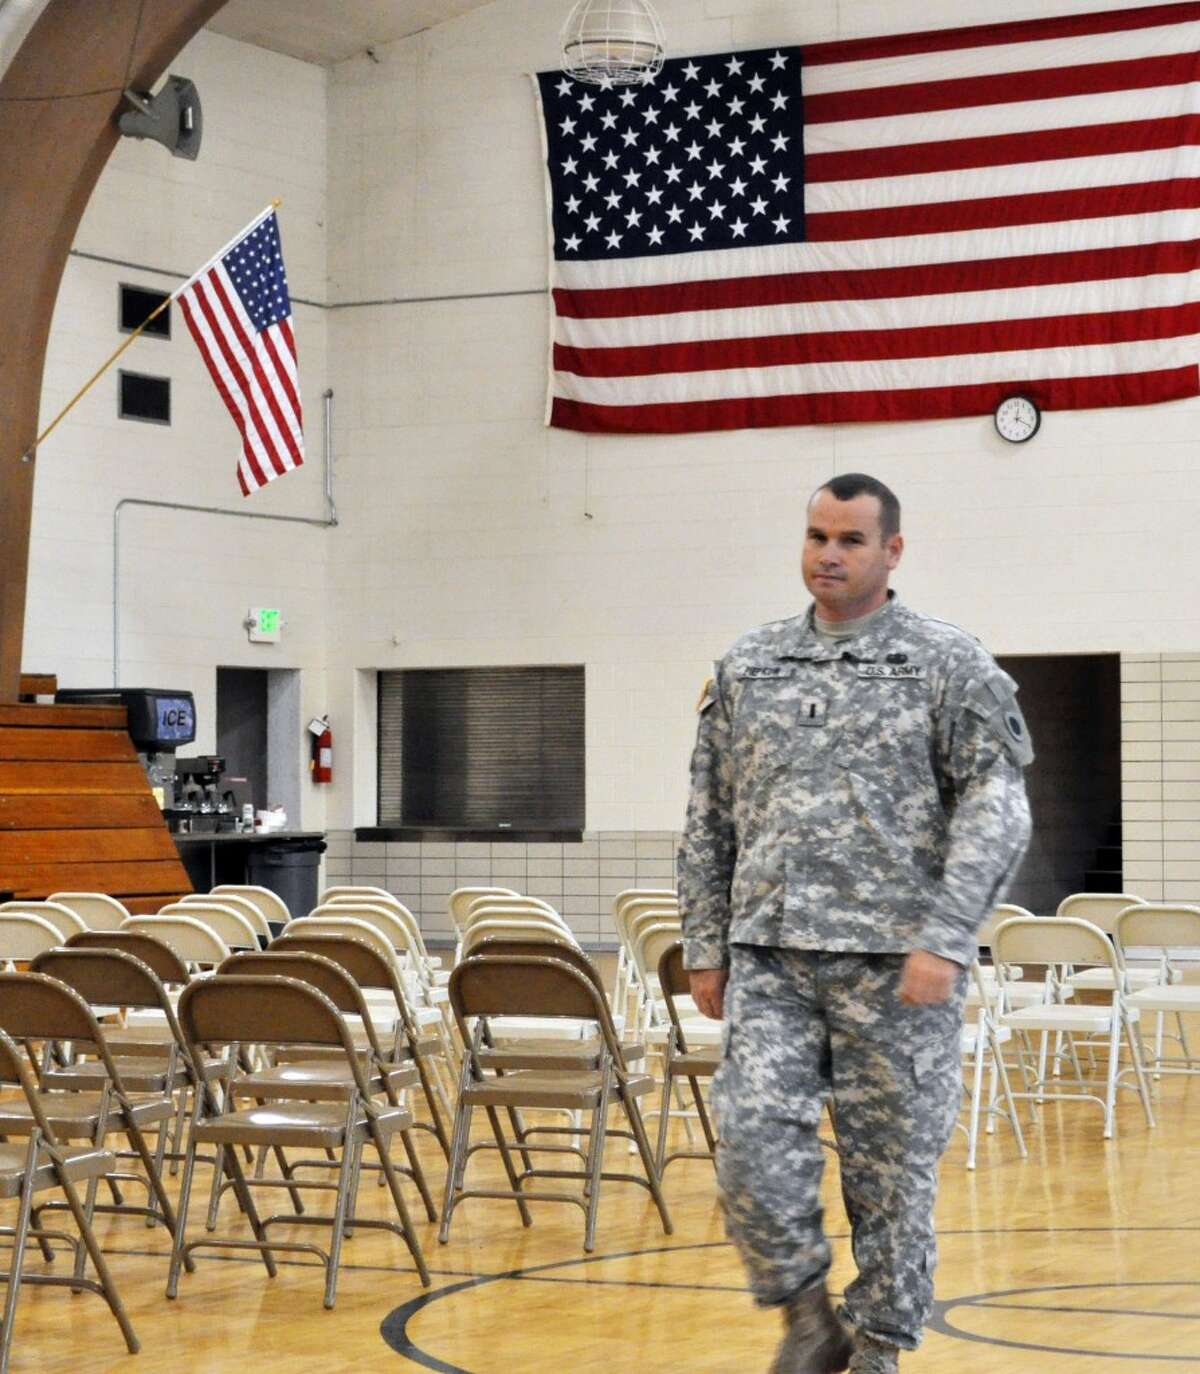 1st Lt. Thomas Piepkow, officer in charge of Bravo Troop's homecoming on Saturday, walks across the floor at the Manistee National Guard Armory Thursday afternoon making sure everything is in place for the 1 p.m. event. (Eric Sagonowsky/News Advocate)